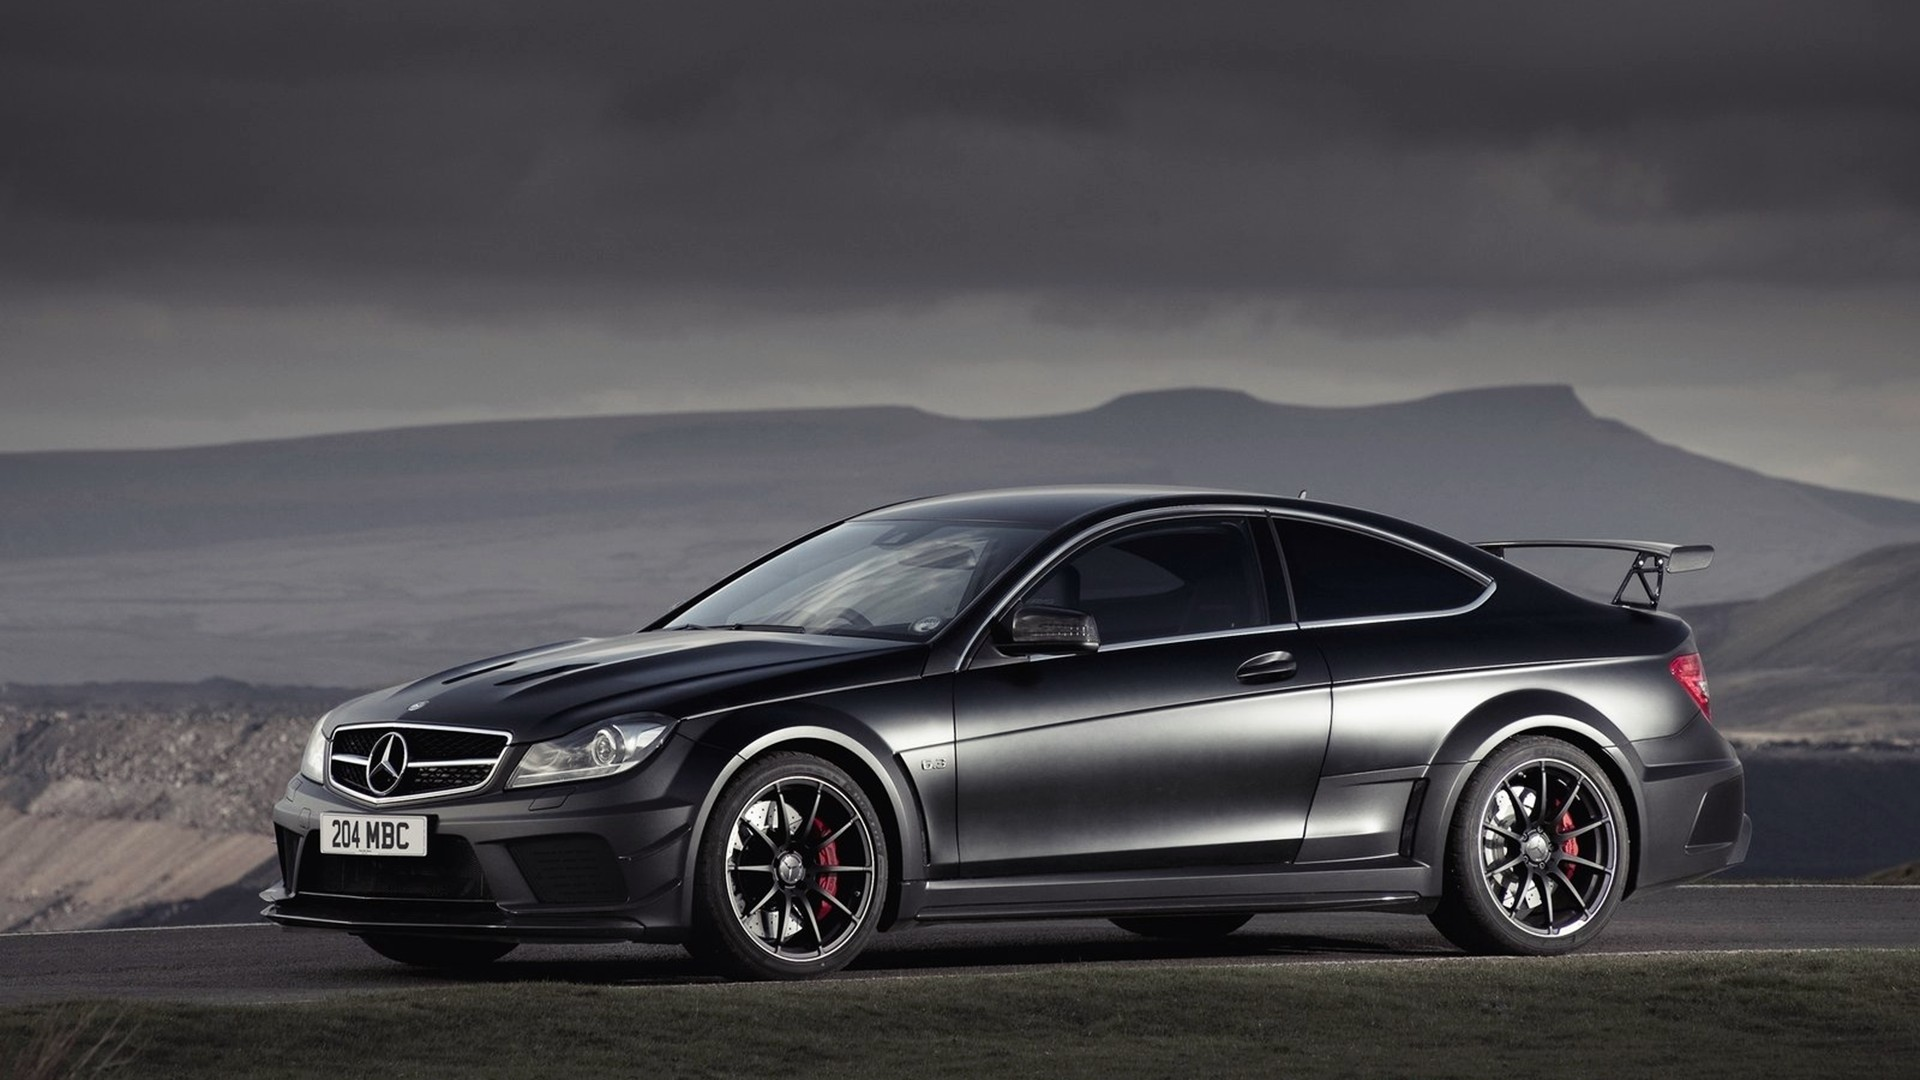 2 mercedes benz c63 amg hd wallpapers backgrounds for Mercedes benz c 63